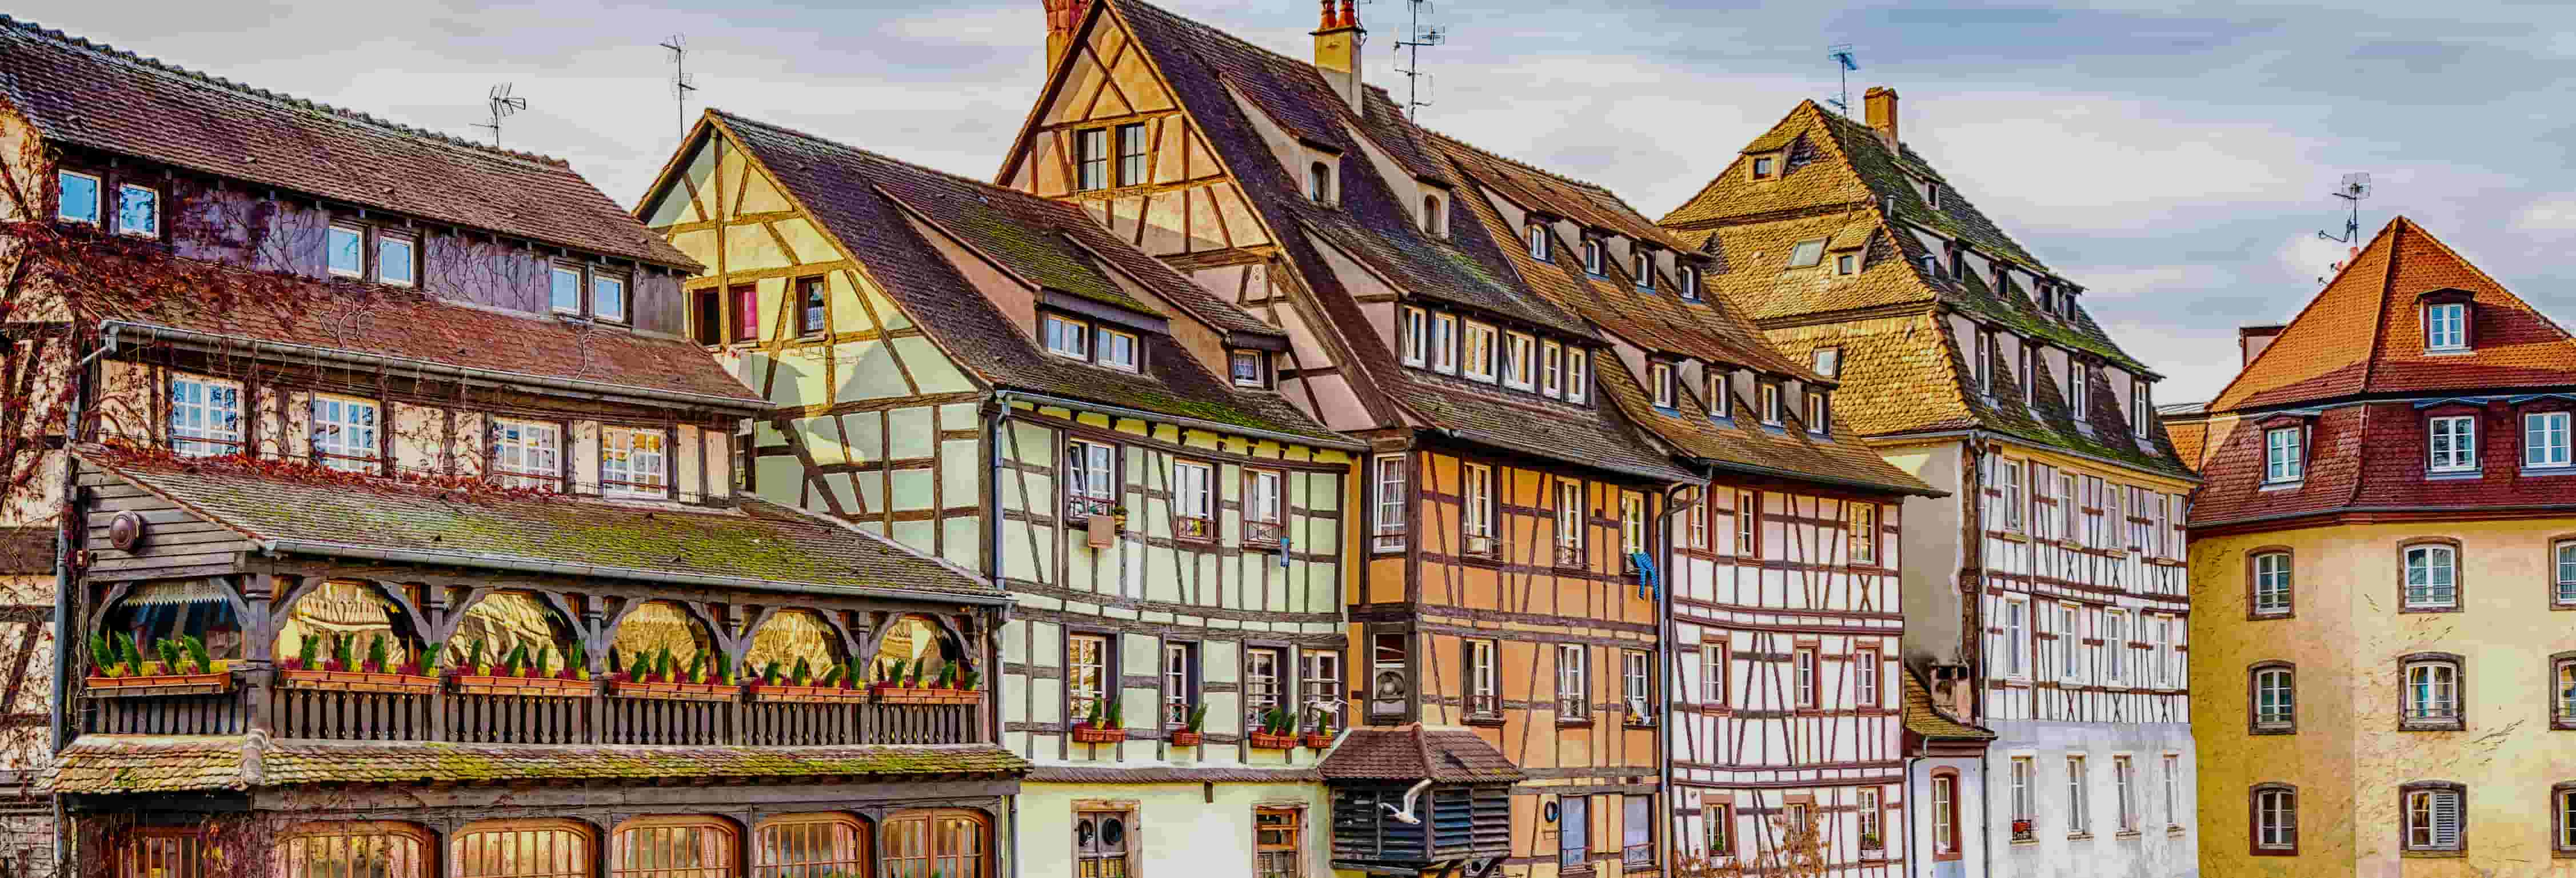 Free Walking Tour of Strasbourg